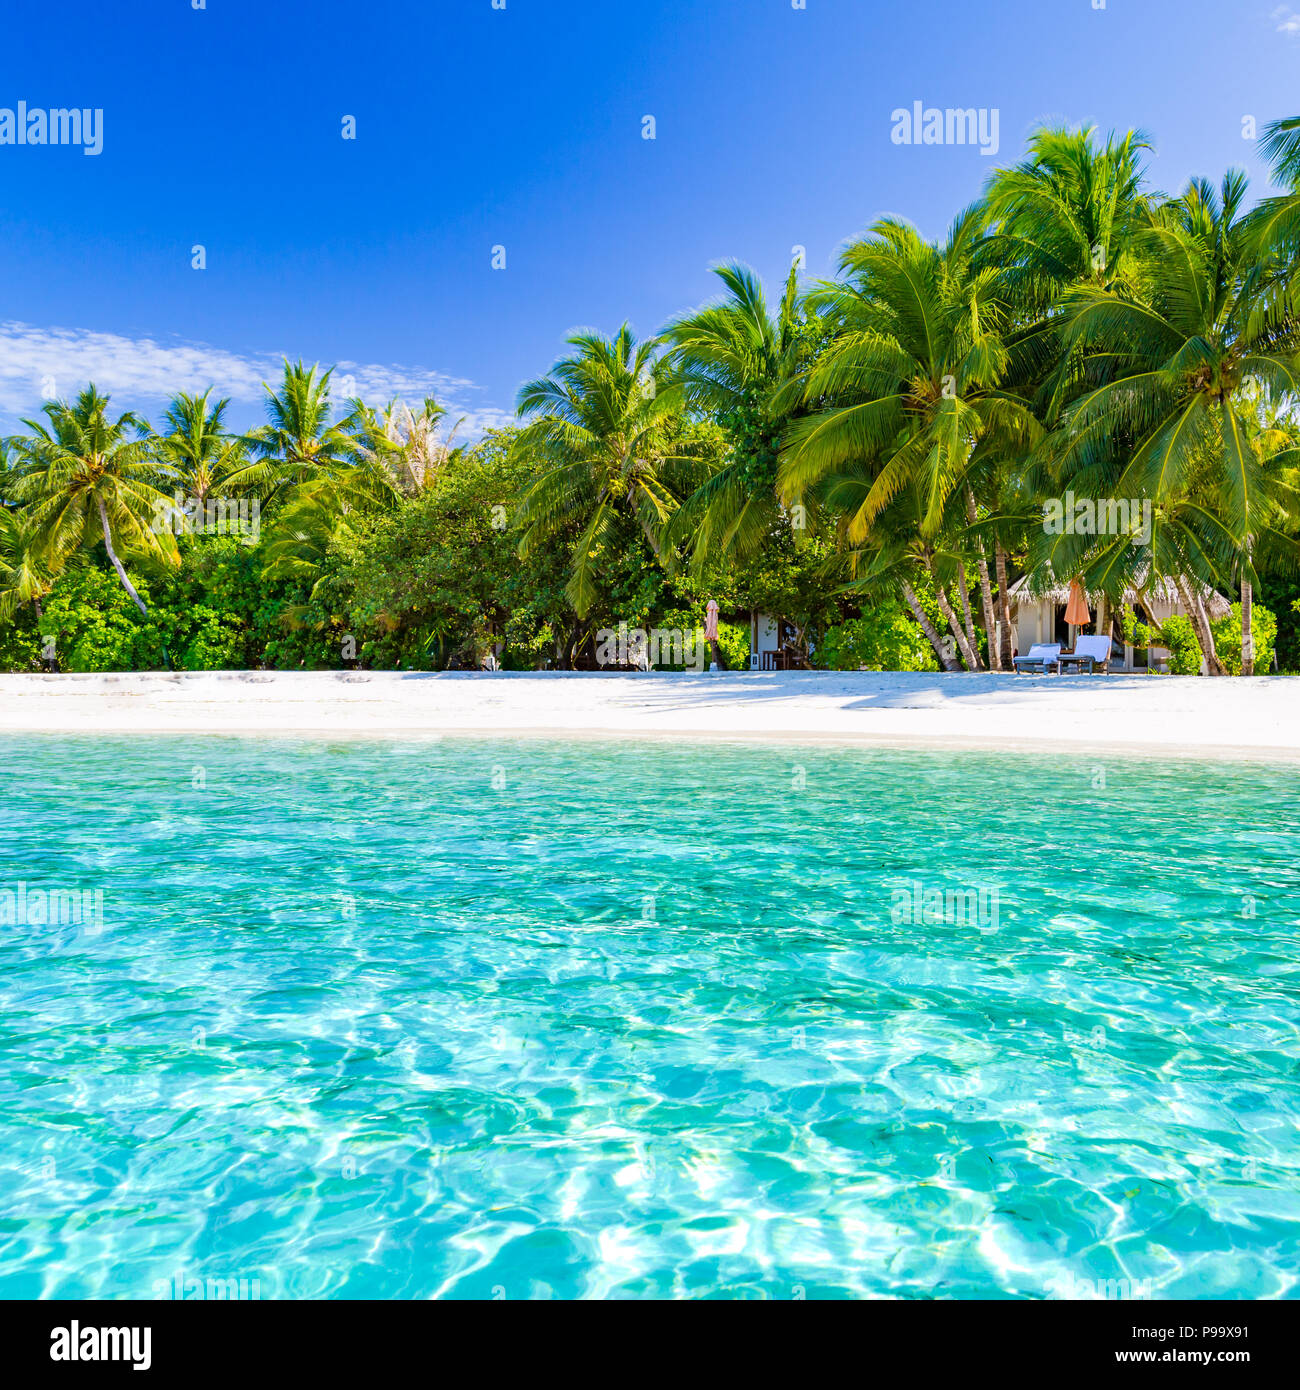 Beautiful beach with palm trees and moody sky. Summer vacation travel holiday background concept. Maldives paradise beach. Luxury travel design - Stock Image